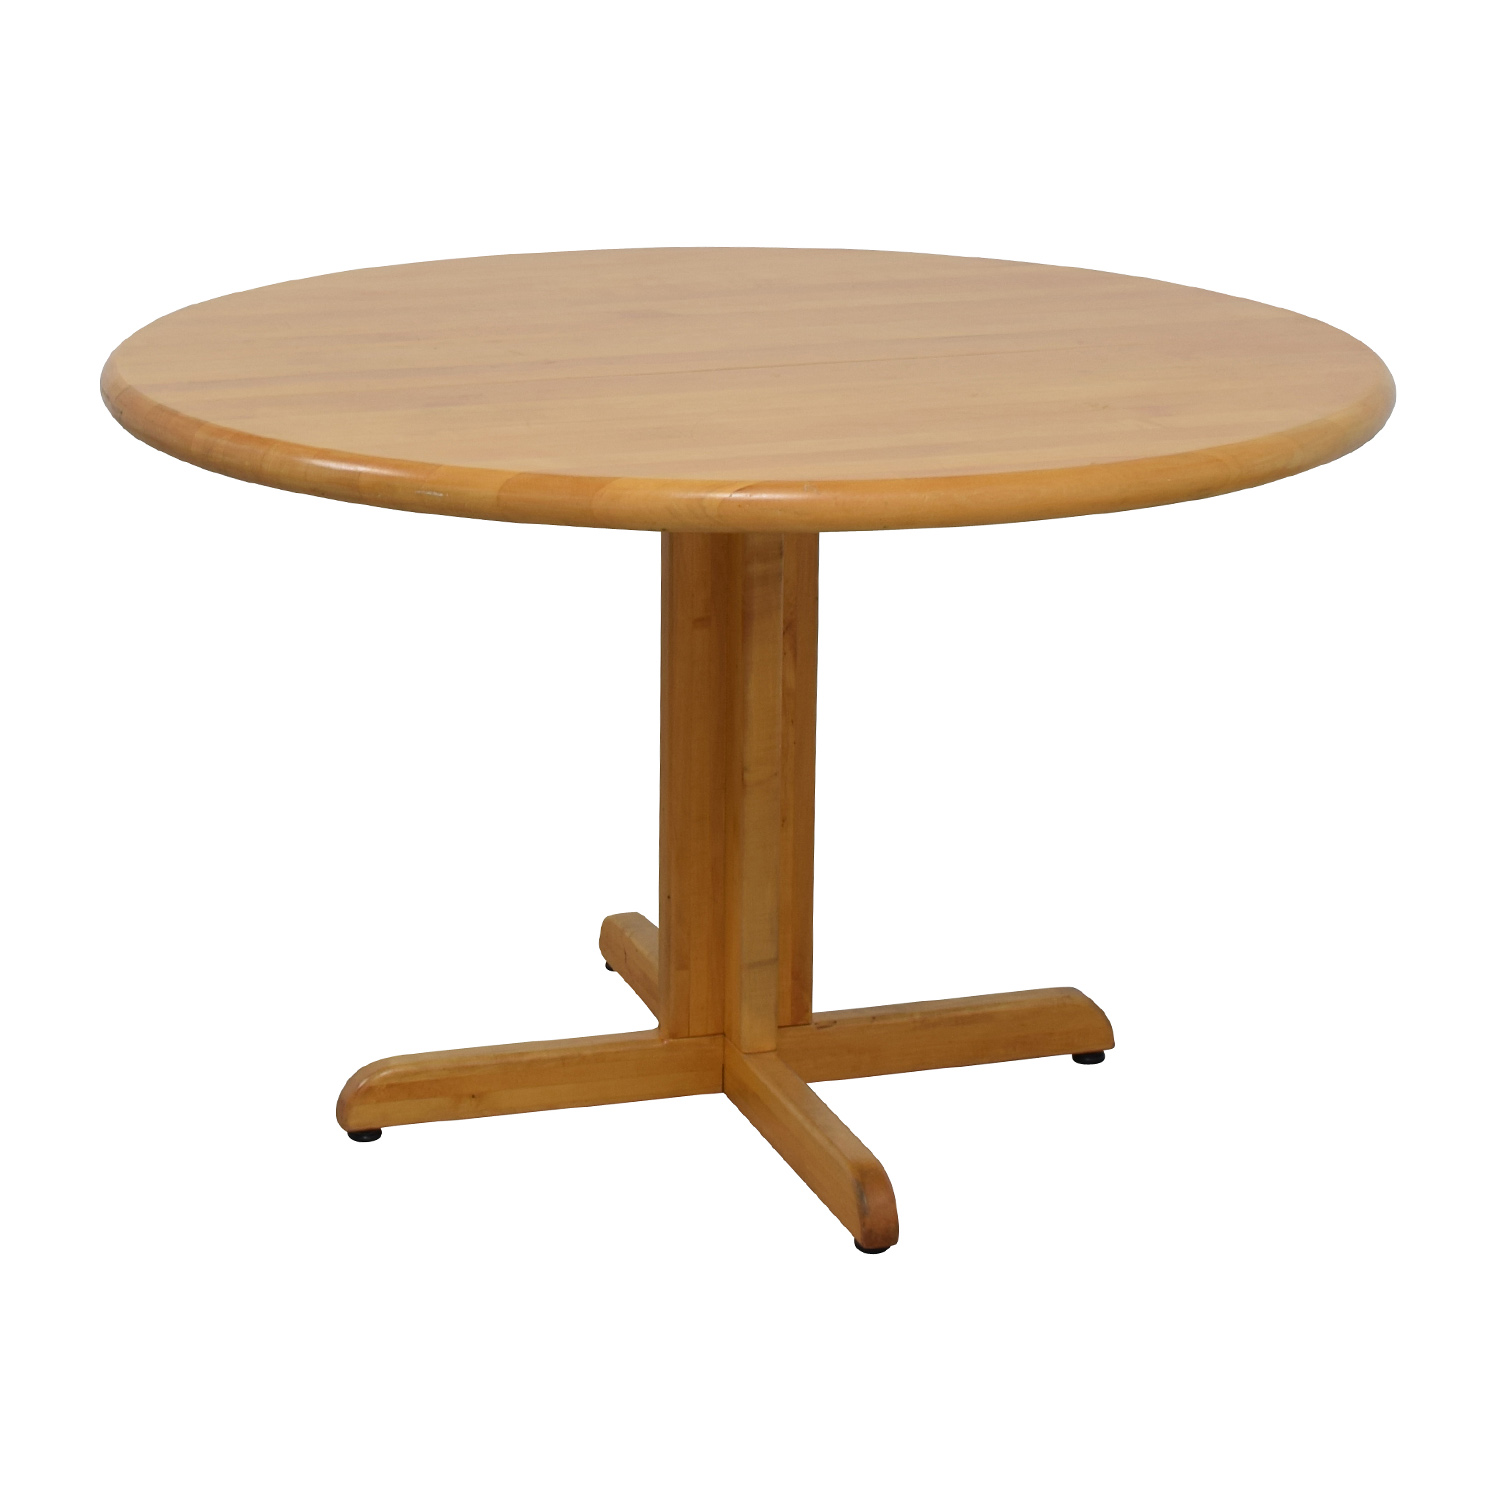 90 off solid wood round table tables for Buy round table